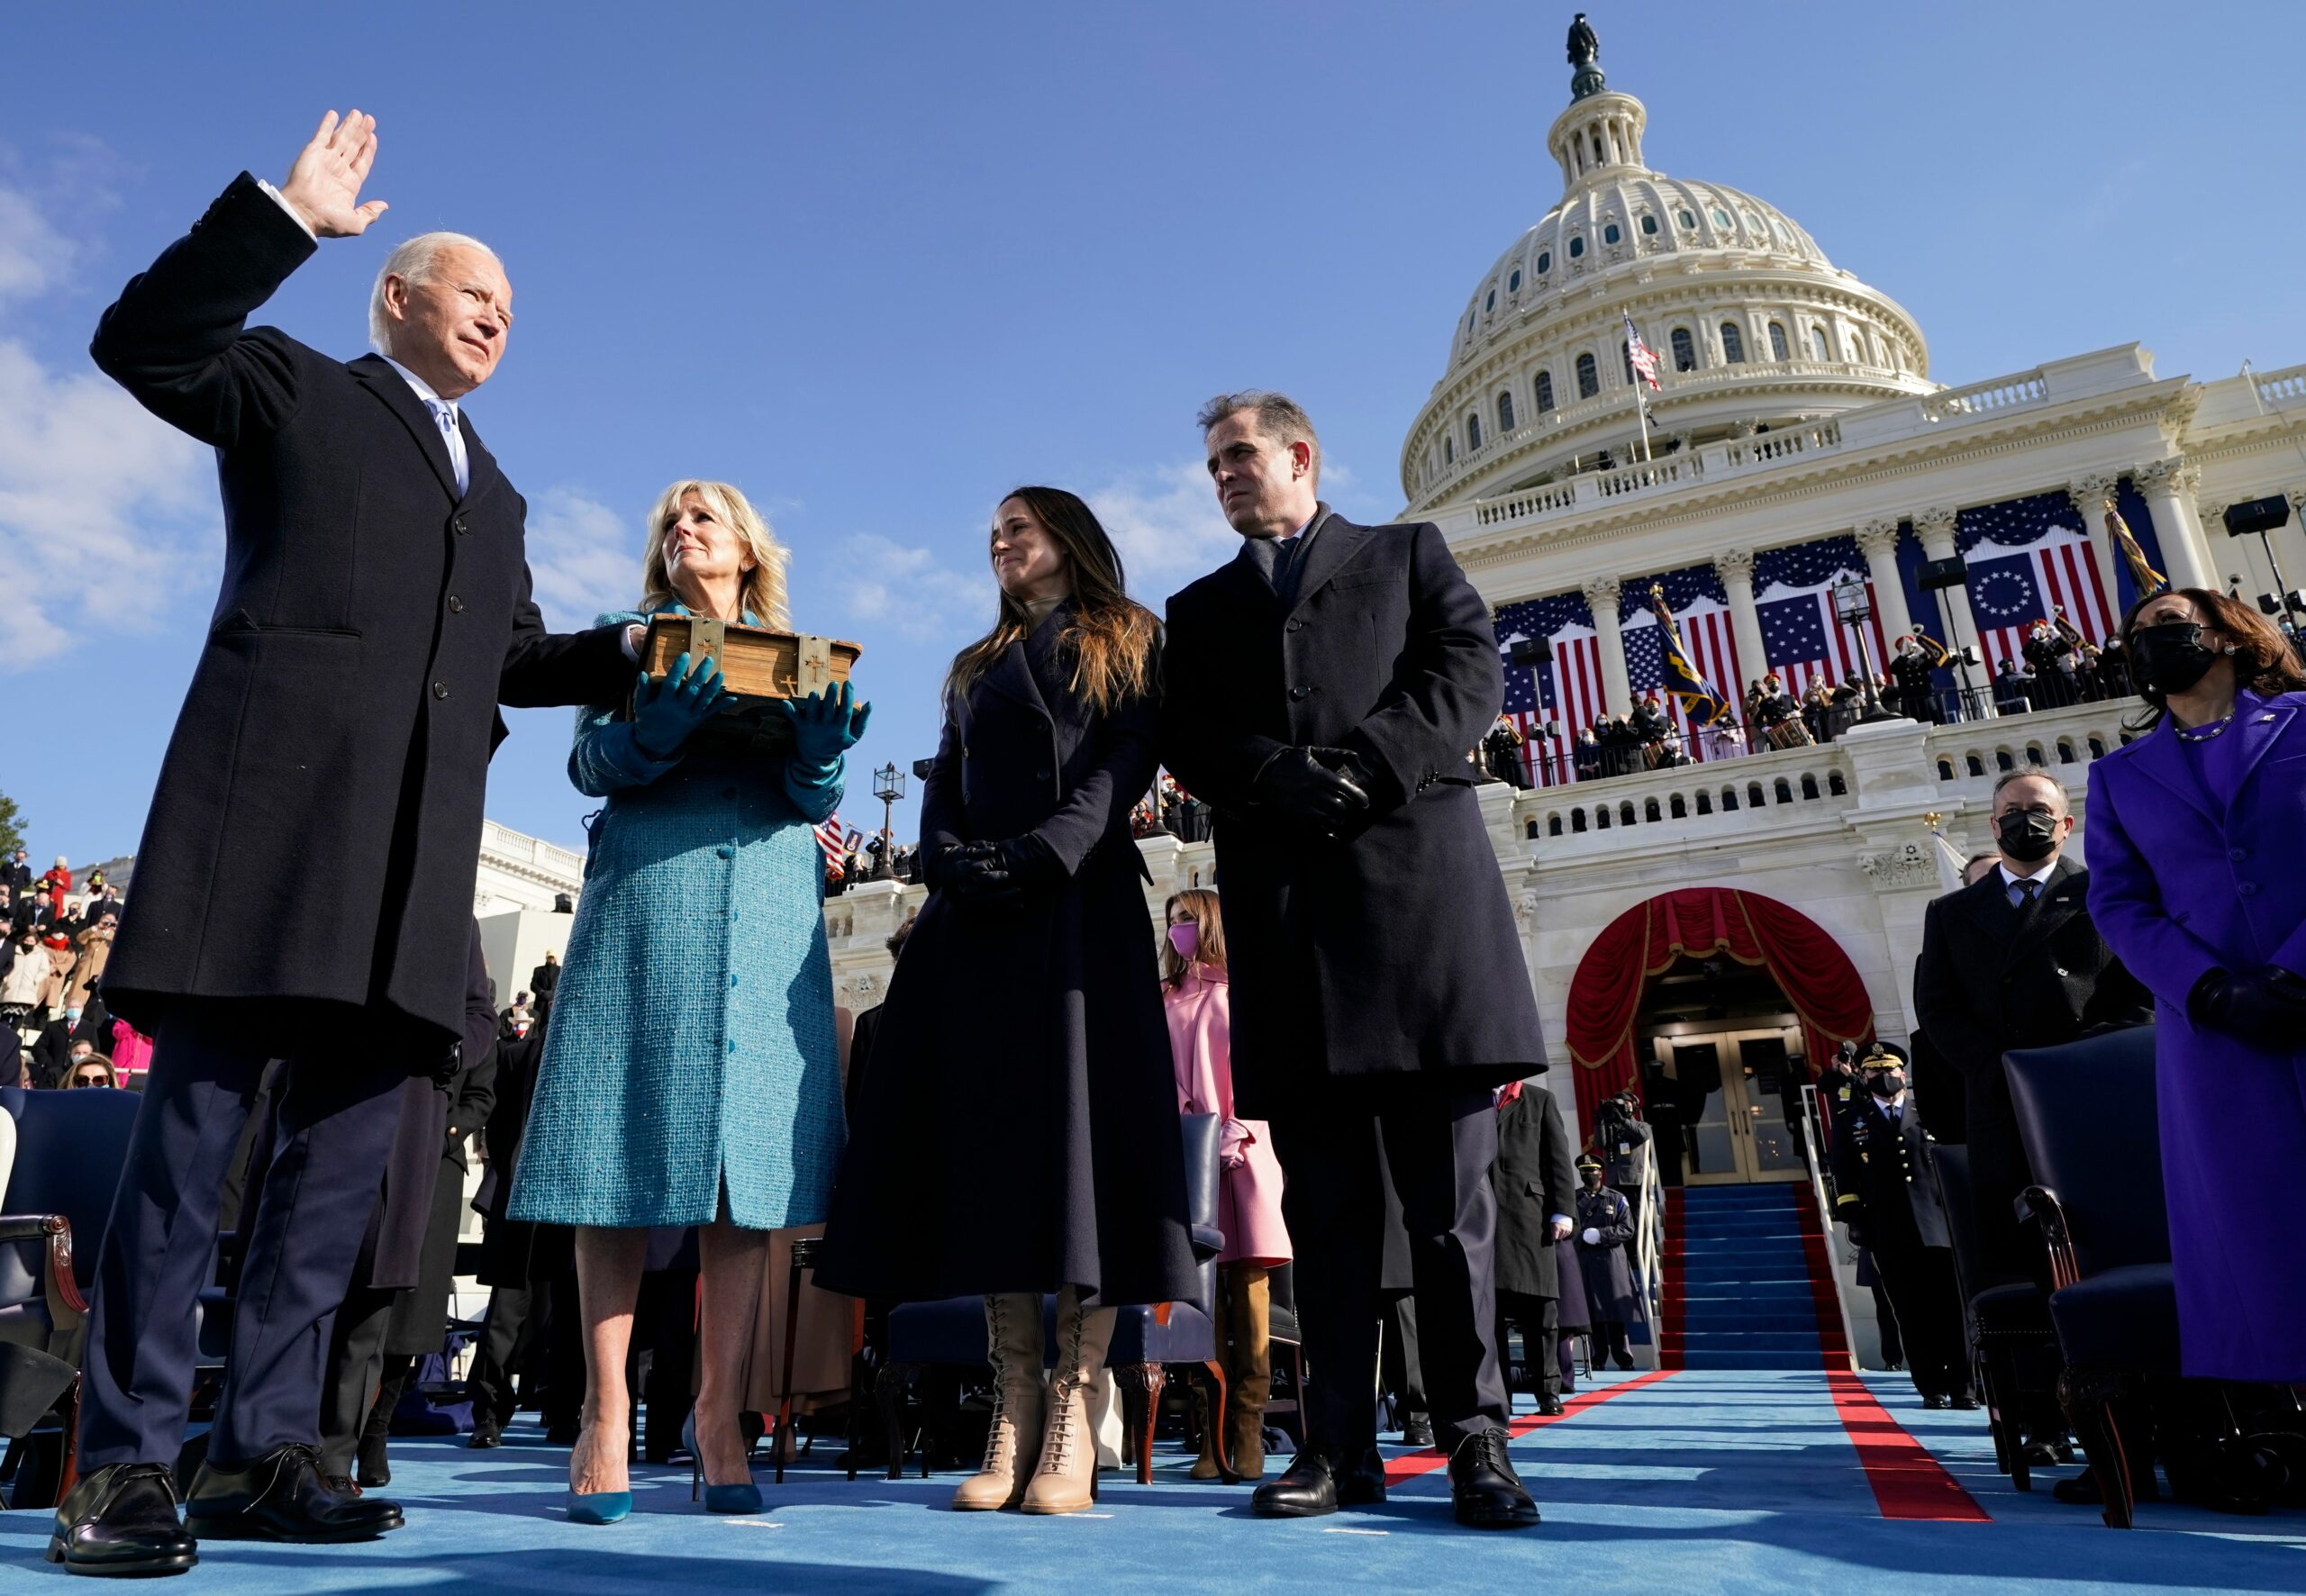 President Joe Biden takes the oath of office during the presidential inauguration on Jan. 20, 2021, at the Capitol in Washington, D.C. Credit: Andrew Harnik/Pool/AFP via Getty Images